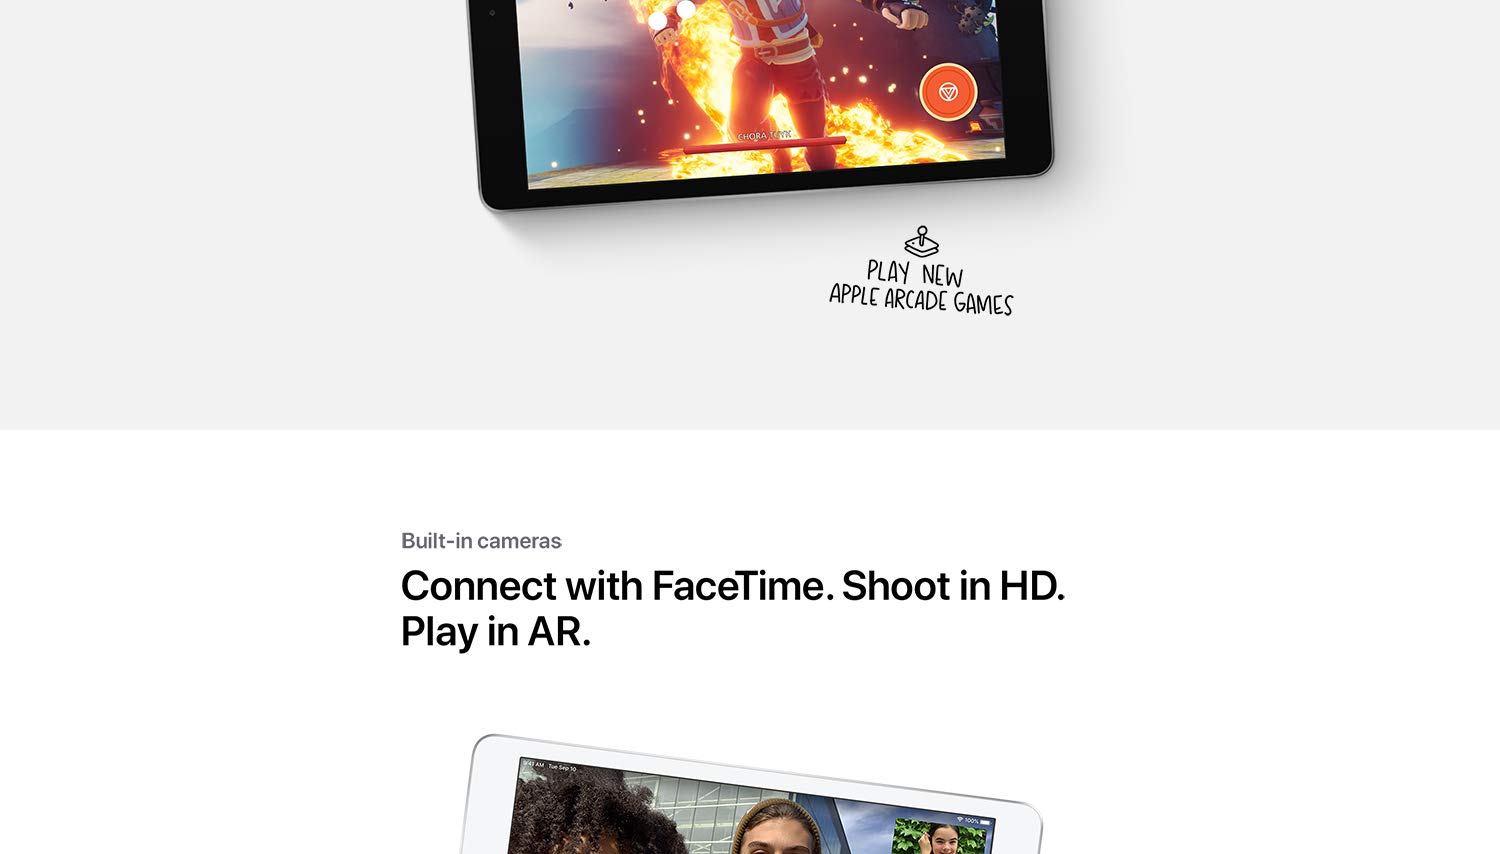 Built in cameras. Connect with FaceTime. Shoot in HD. Play in AR.